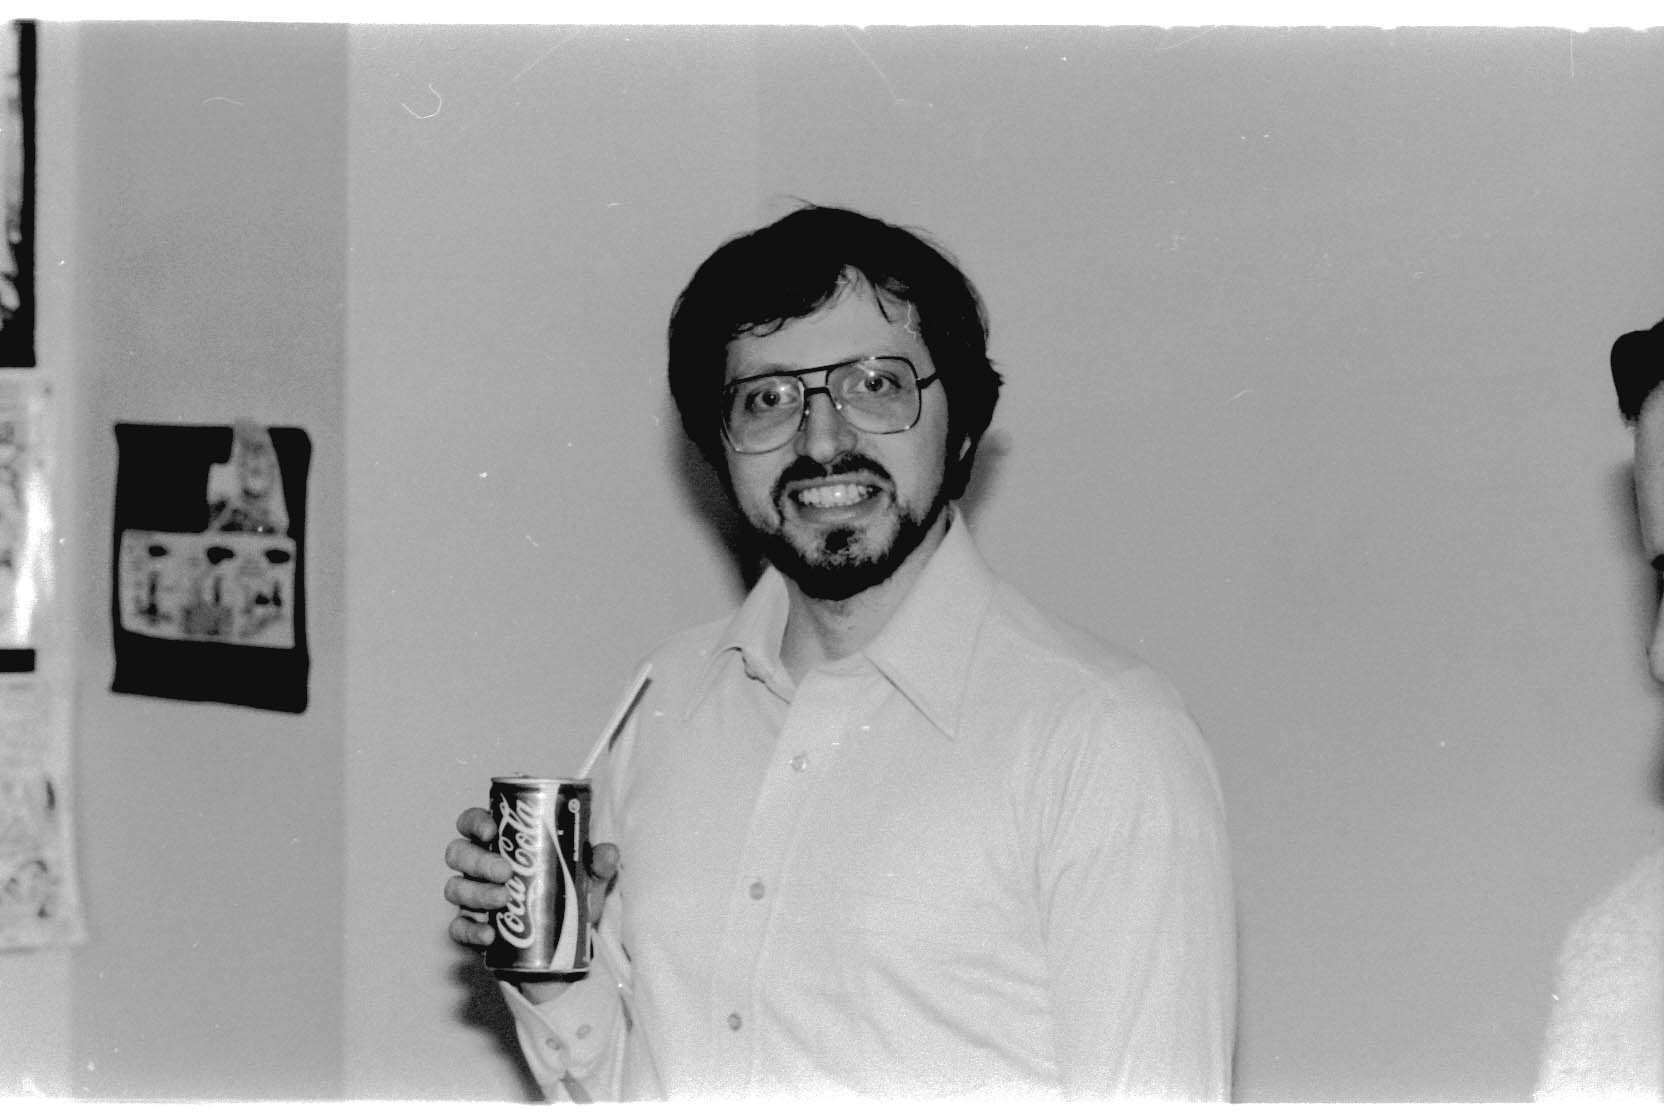 "Marv Wolfman. Marv was one of the ""Creator Editors"" who essentially wrote their own stuff and also had an office at Marvel. Marv did a pretty good job on Crazy Magazine but was super famous for his Dracula work. He was such a mild-mannered guy, but isn't that the way?"